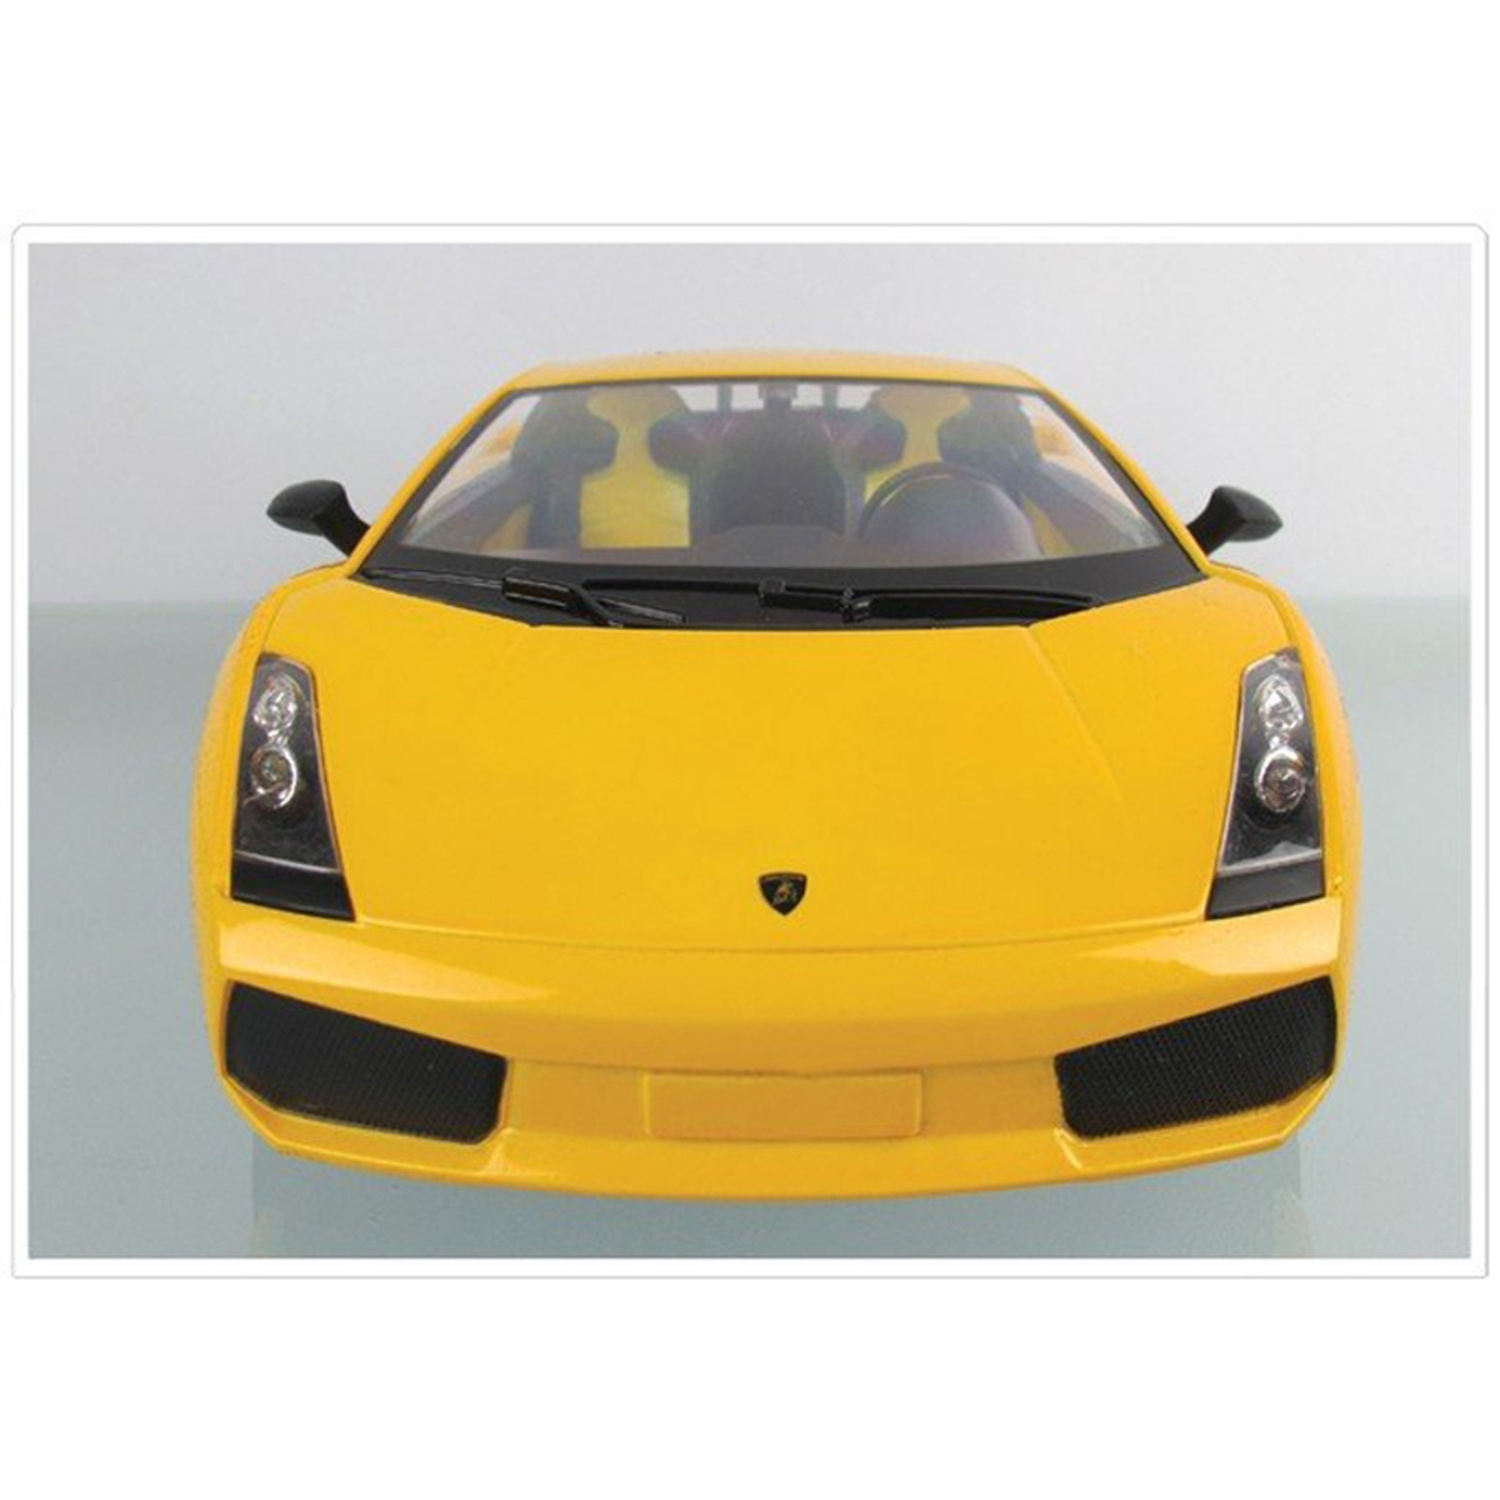 "11"" 1:14 Lamboighini Superleggera Yellow R C Radio Control Car (Gift Idea) RC Car R C Car Radio... by"